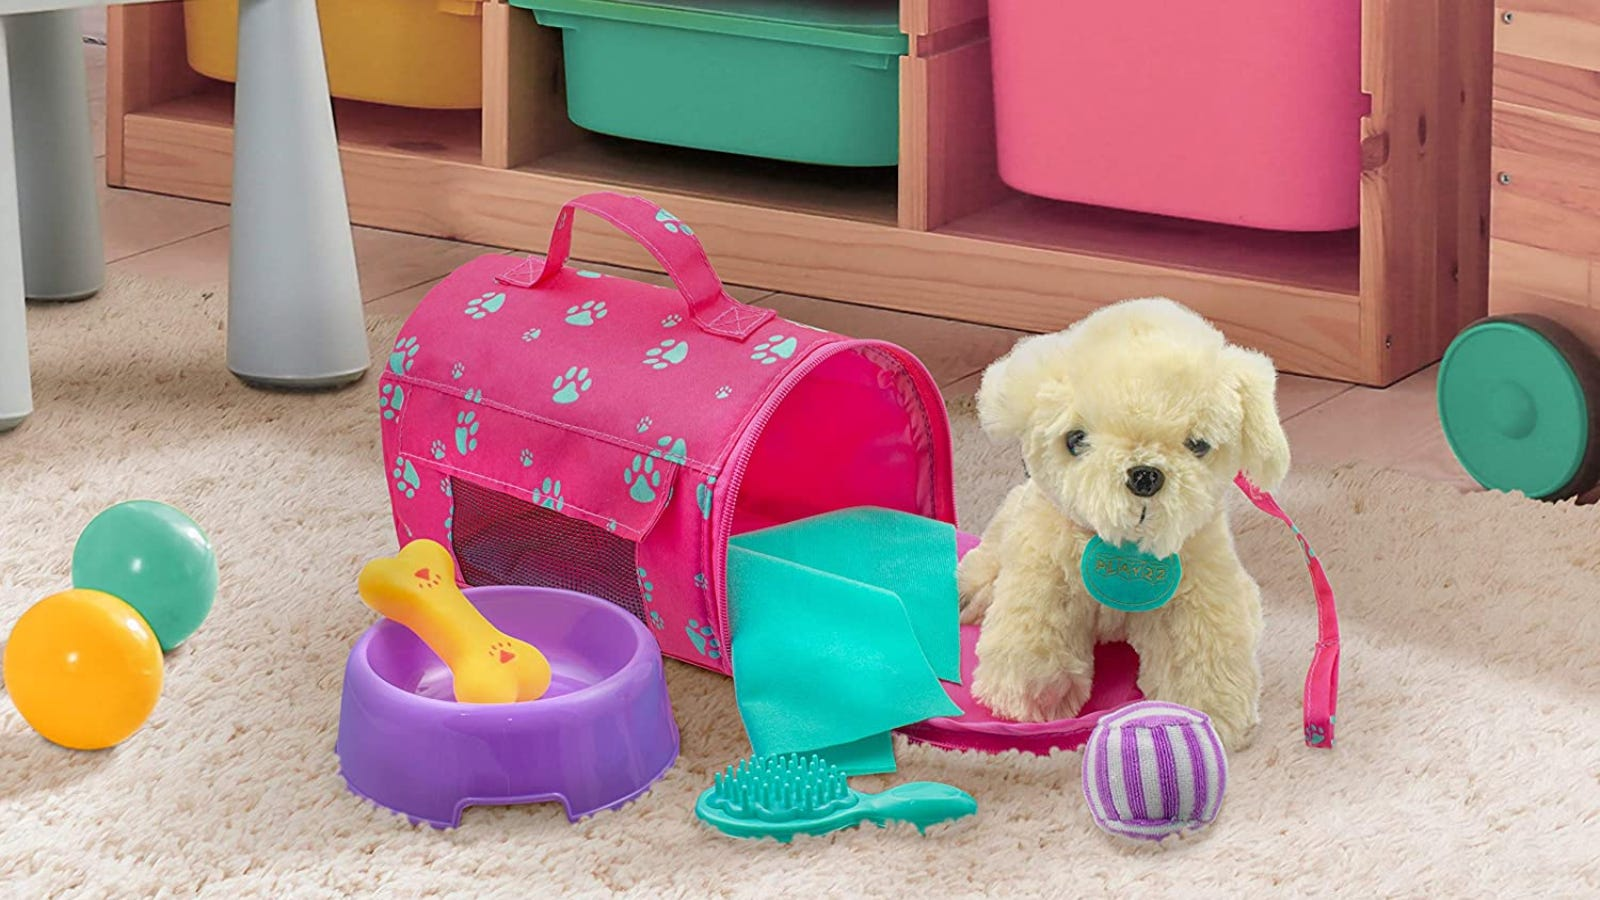 A light-colored dog stuffed animal wears a pink leash and stands next to its matching carrier and accessories.